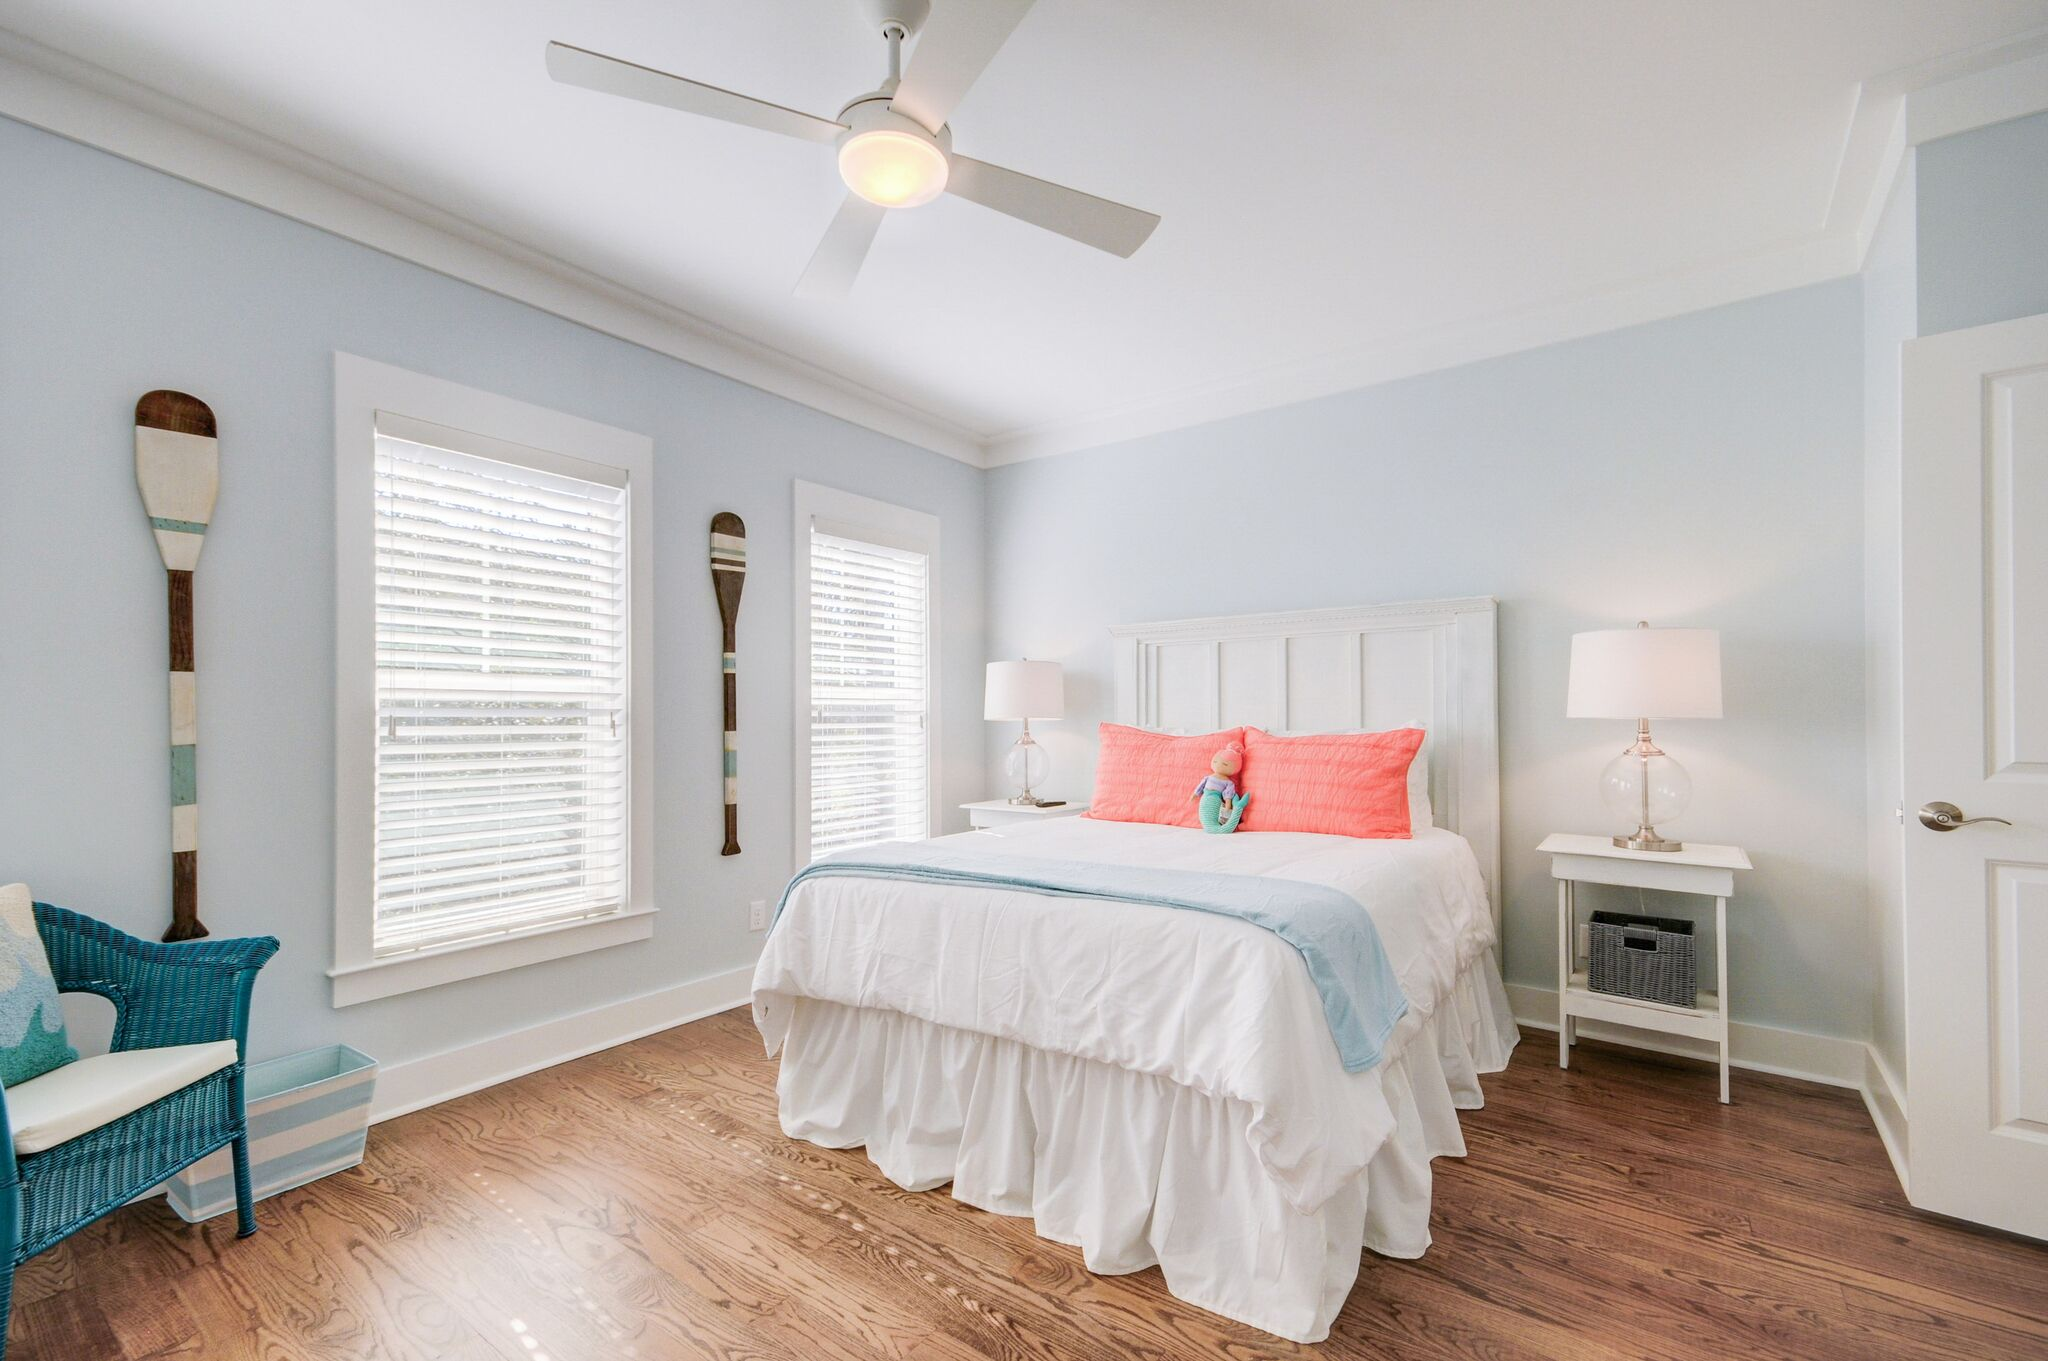 1st Floor Very Large Queen Bedroom with a Daybed and Trundle Bed